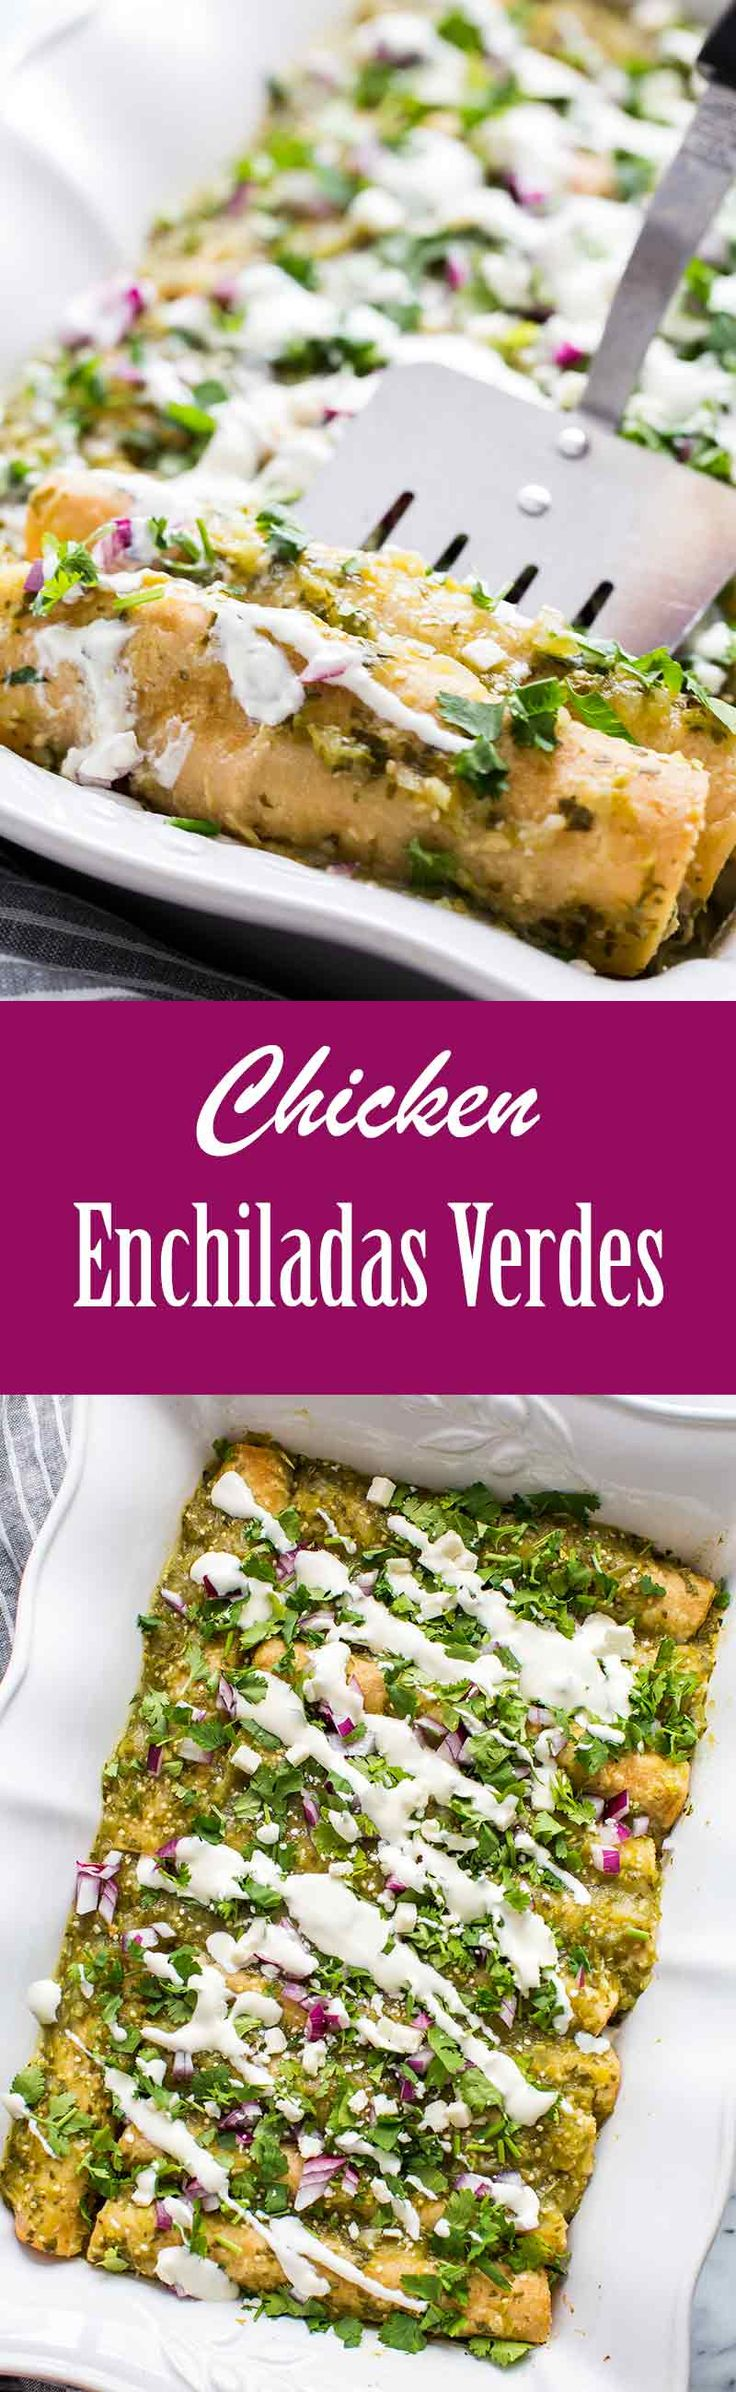 Chicken Enchiladas with Tomatillo Salsa Verde Sauce! Served with chopped onion, Mexican cheese, sour cream, and cilantro. #enchiladas #salsaverde #mexicanfood